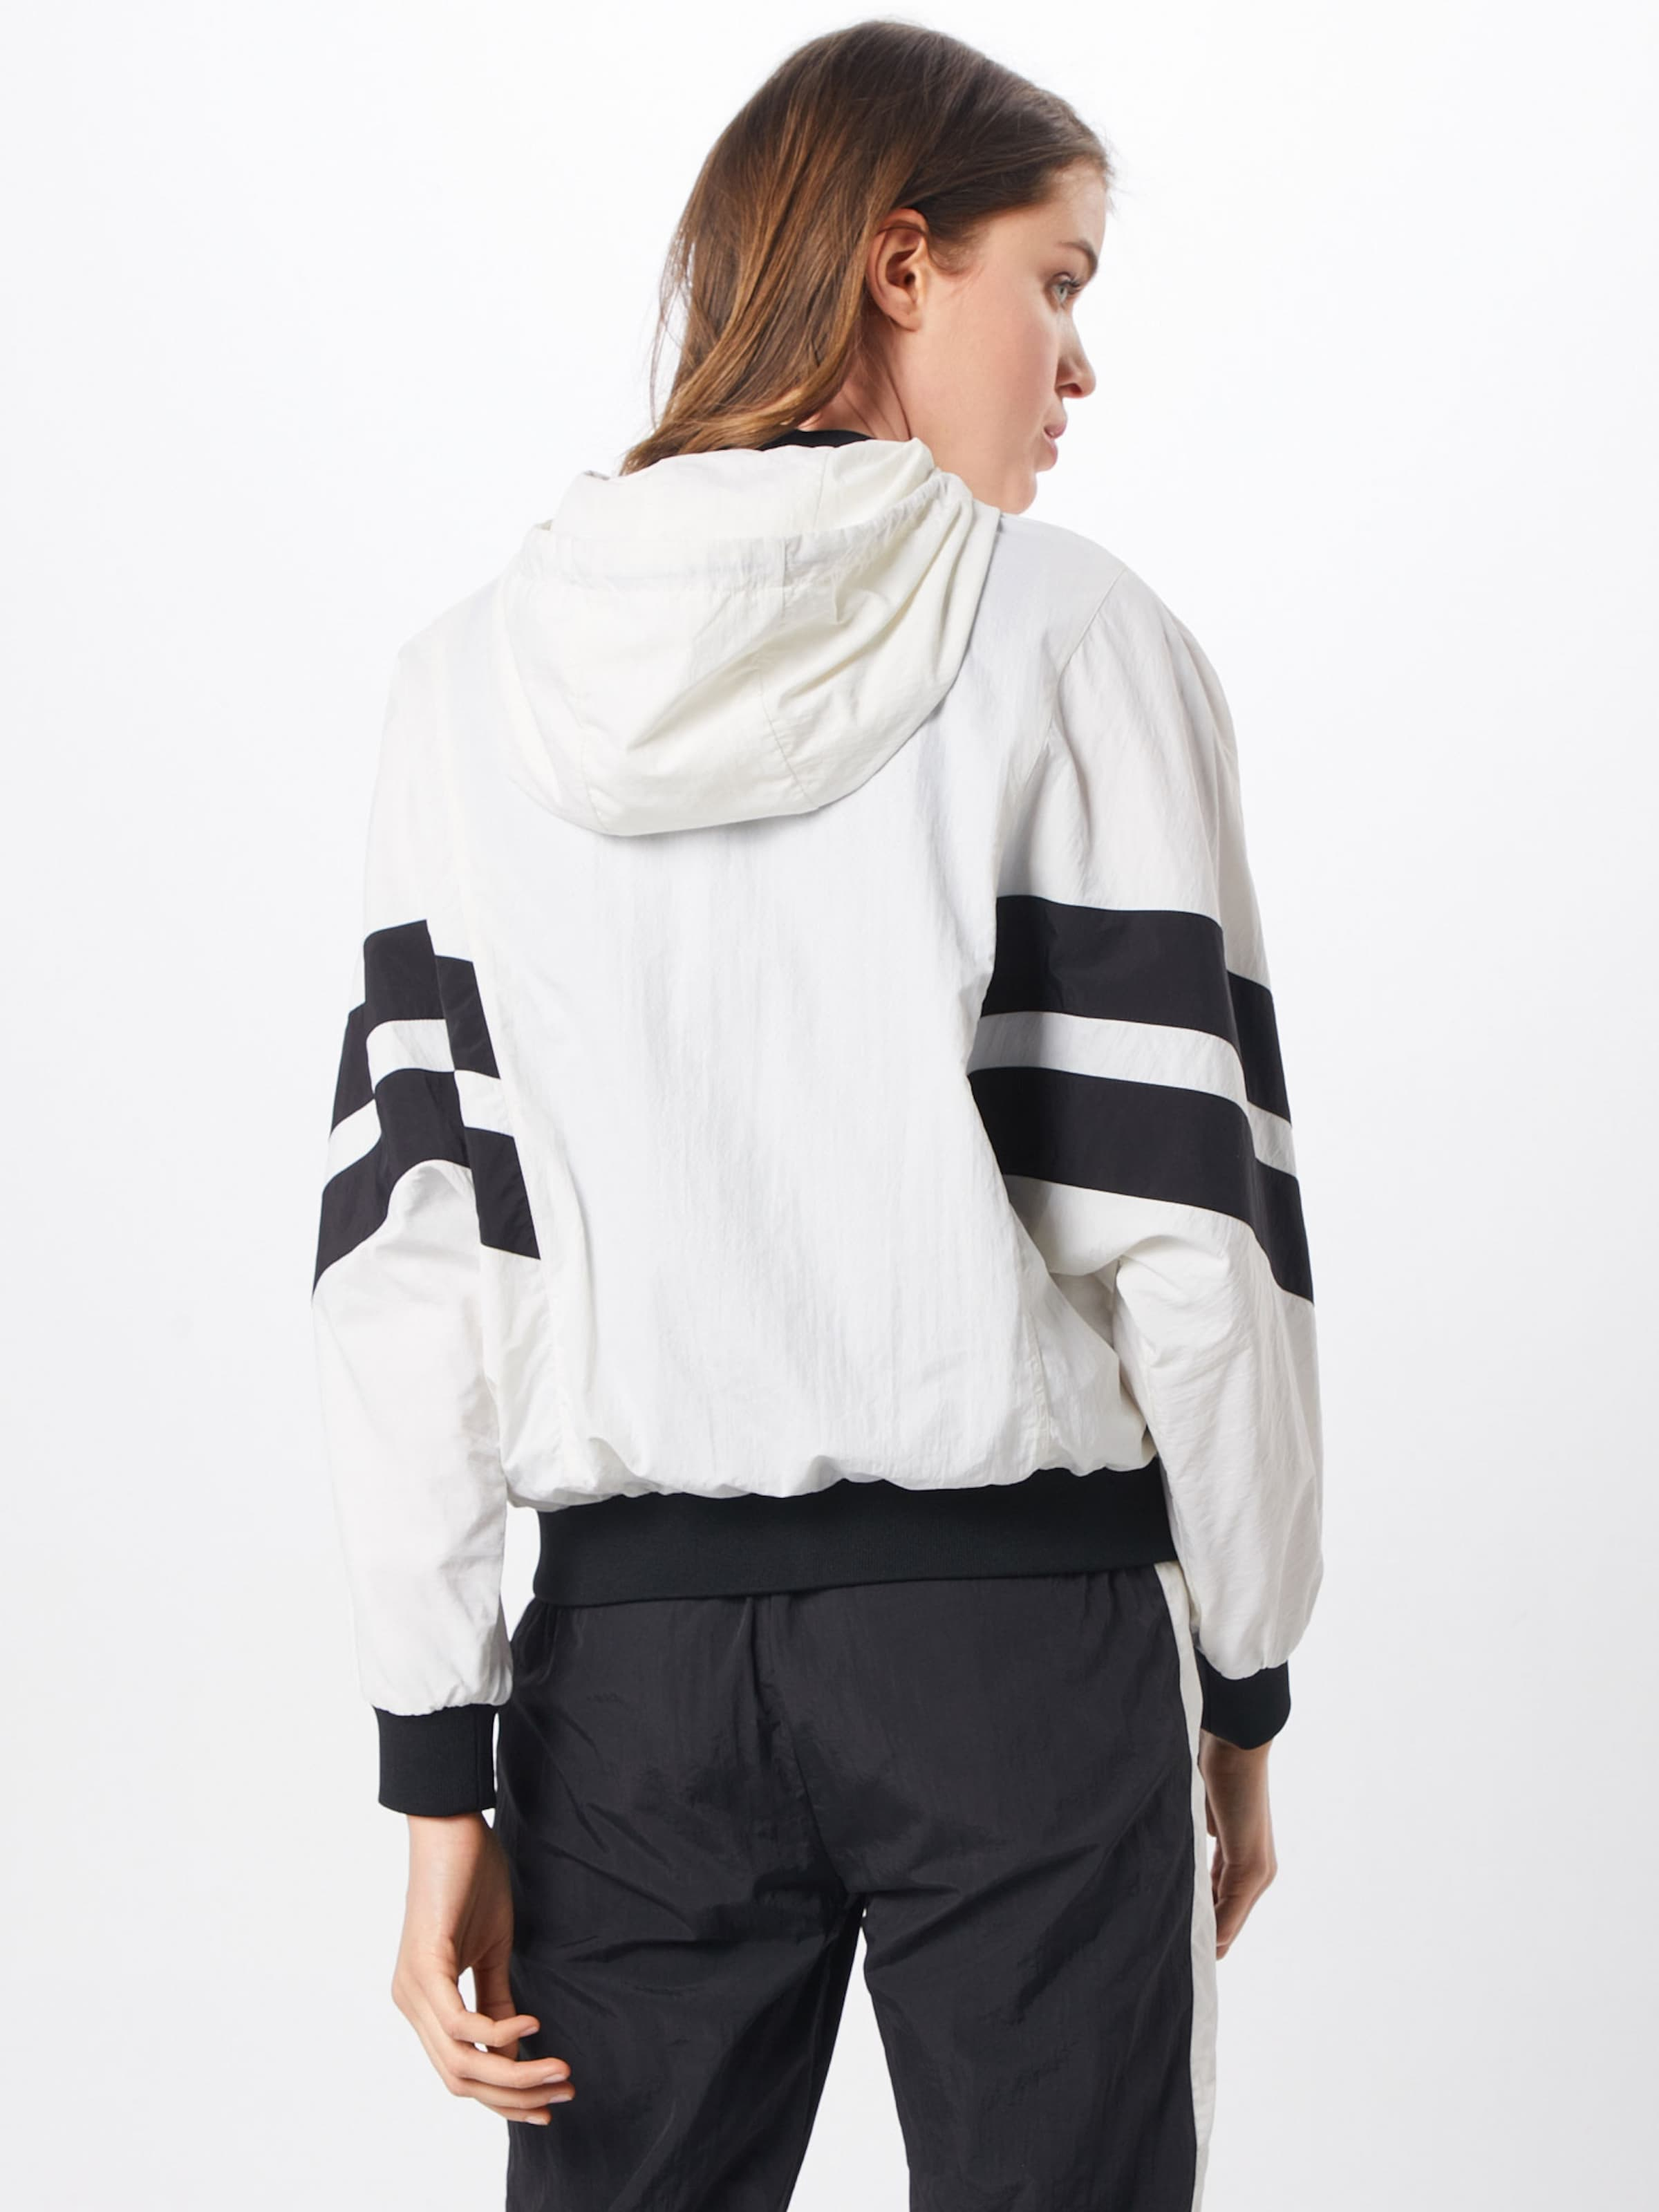 Batwing Classics Jacket' Crinkle Jacken In Urban 'ladies Wei KlJc3uTF1